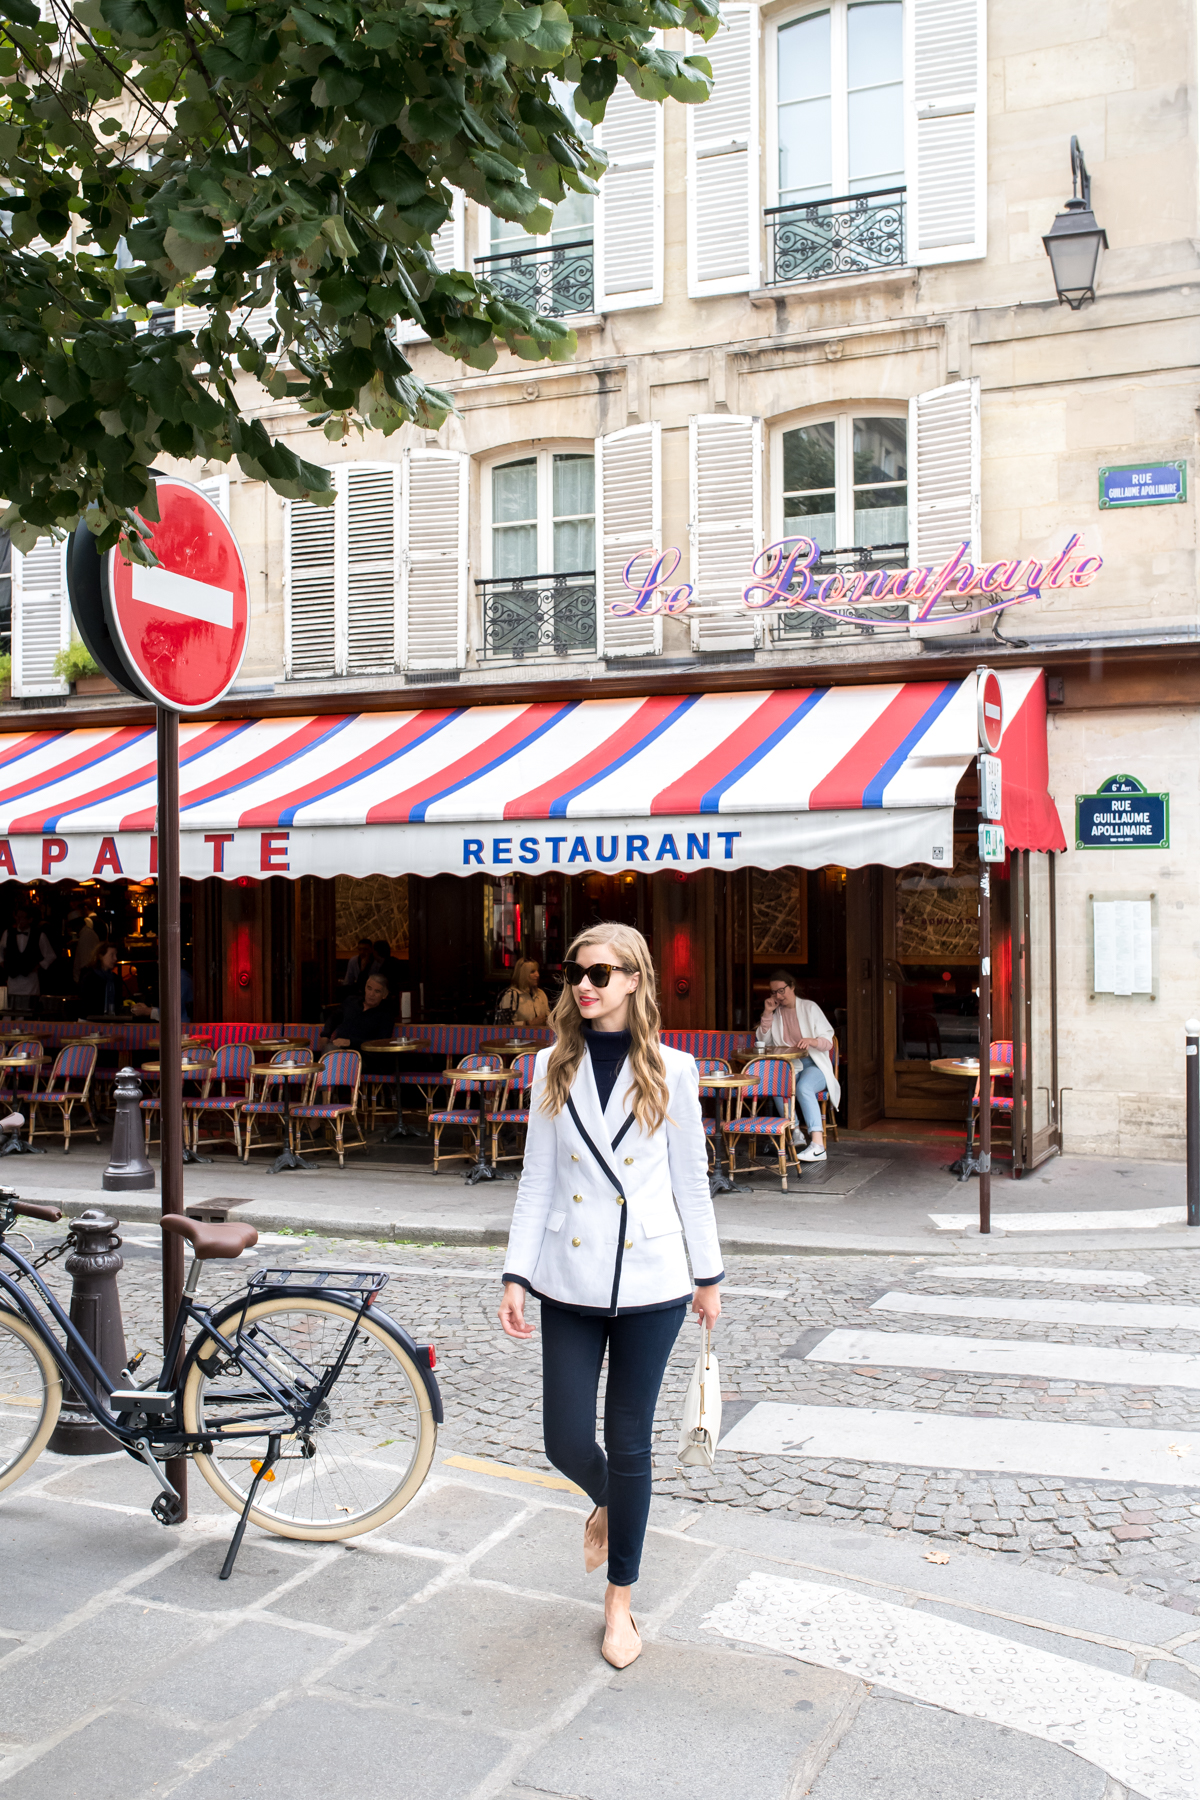 Stacie Flinner Best Paris Cafes-4.jpg